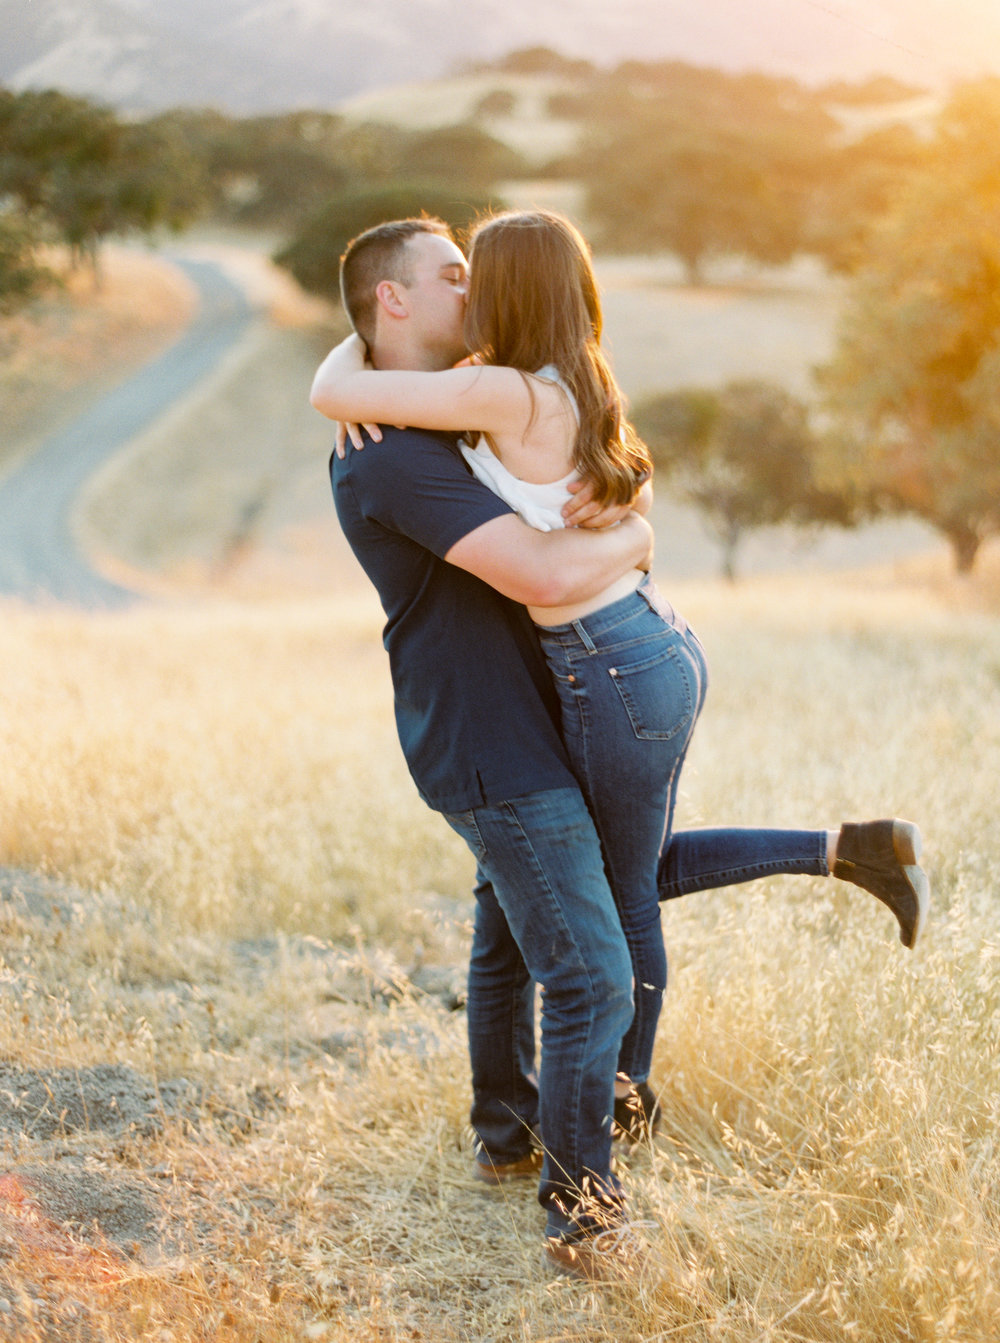 del-valle-livermore-engagement-session-1.jpg